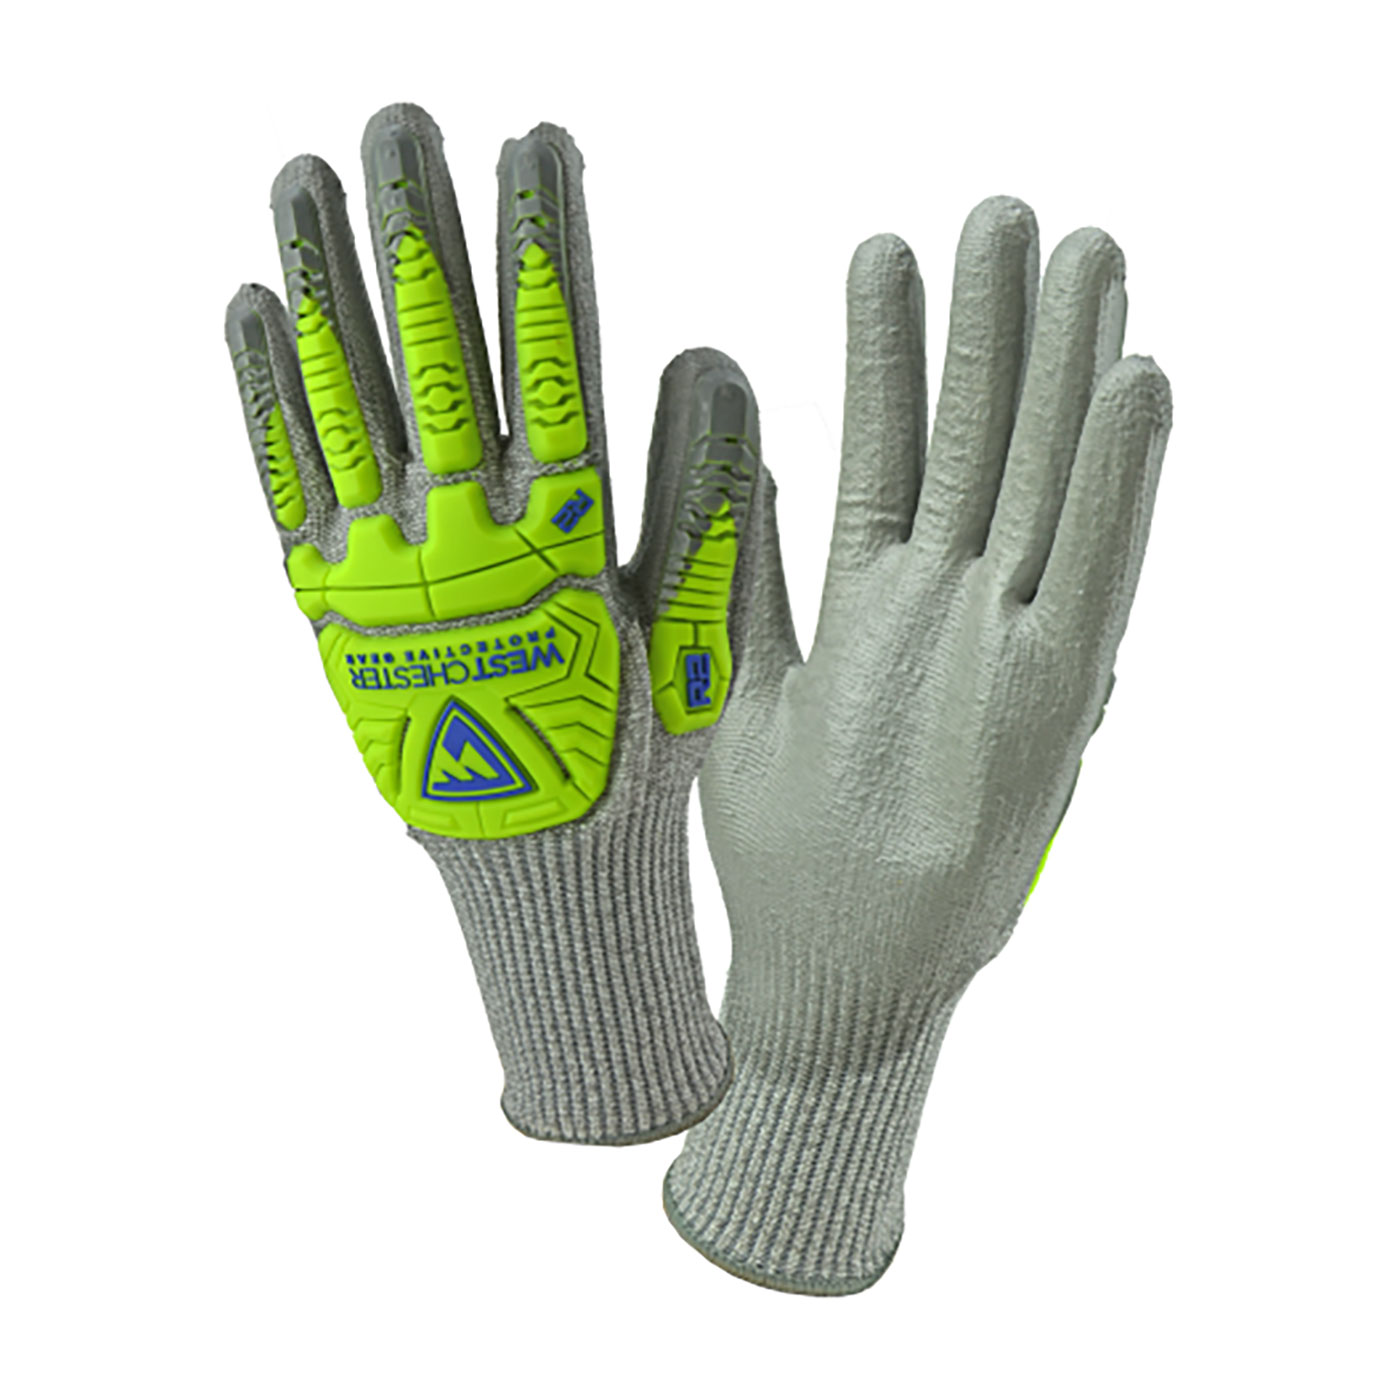 West Chester 710HGUBHVG M 710HGUBHVG R2™ Seamless Knit HPPE Blended Cut-Resistant Gloves, Medium, HPPE, Gray, Rib Knit Cuff